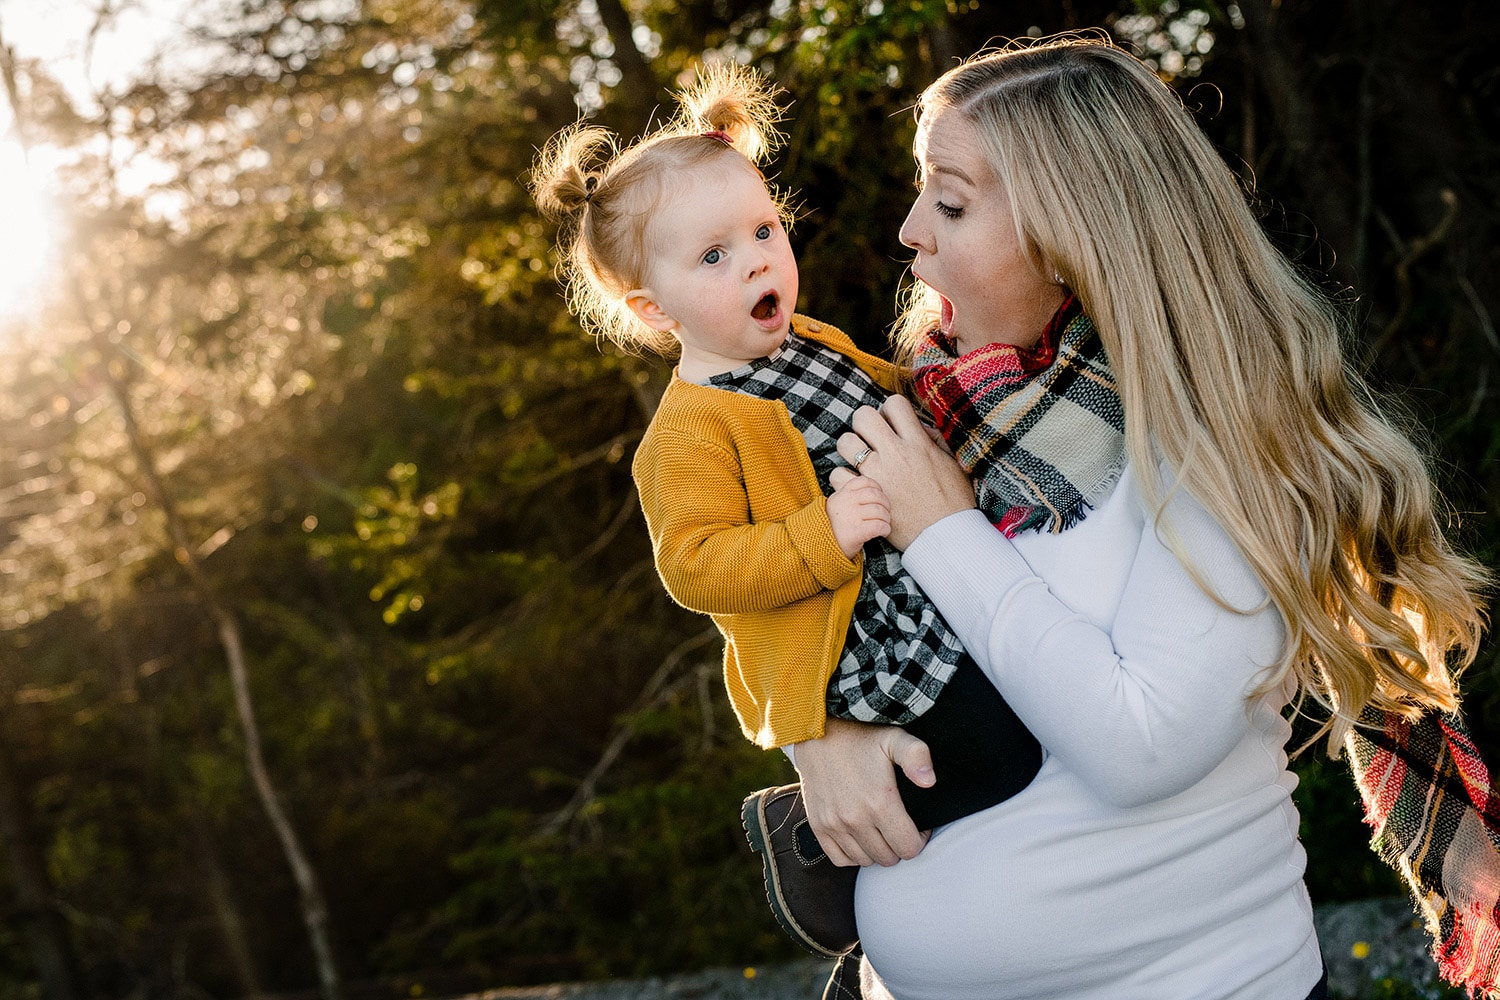 CookedPhotography FamilyPhotography PublicGardens Family Halifax Halifax Family Photographer JennNauss14